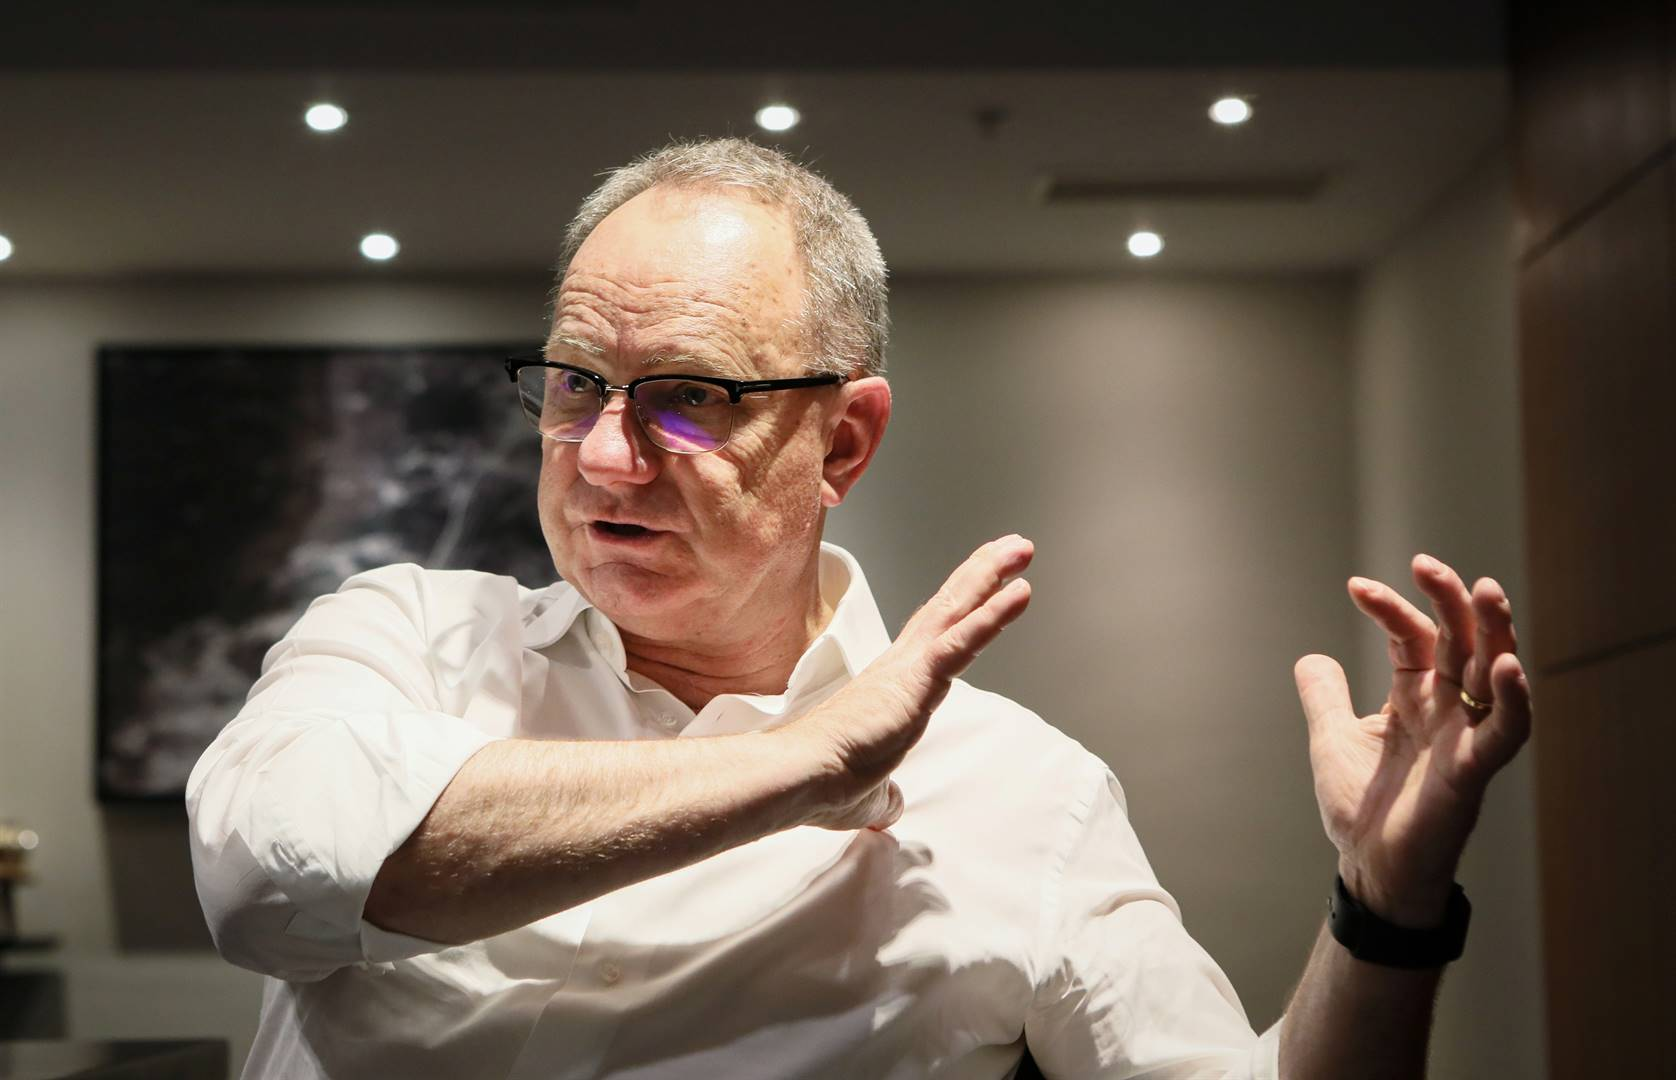 Anglo American CEO Mark Cutifani during an interview with Reuters at the Investing in African Mining Indaba conference in Cape Town. Picture: Sumaya Hisham/Reuters